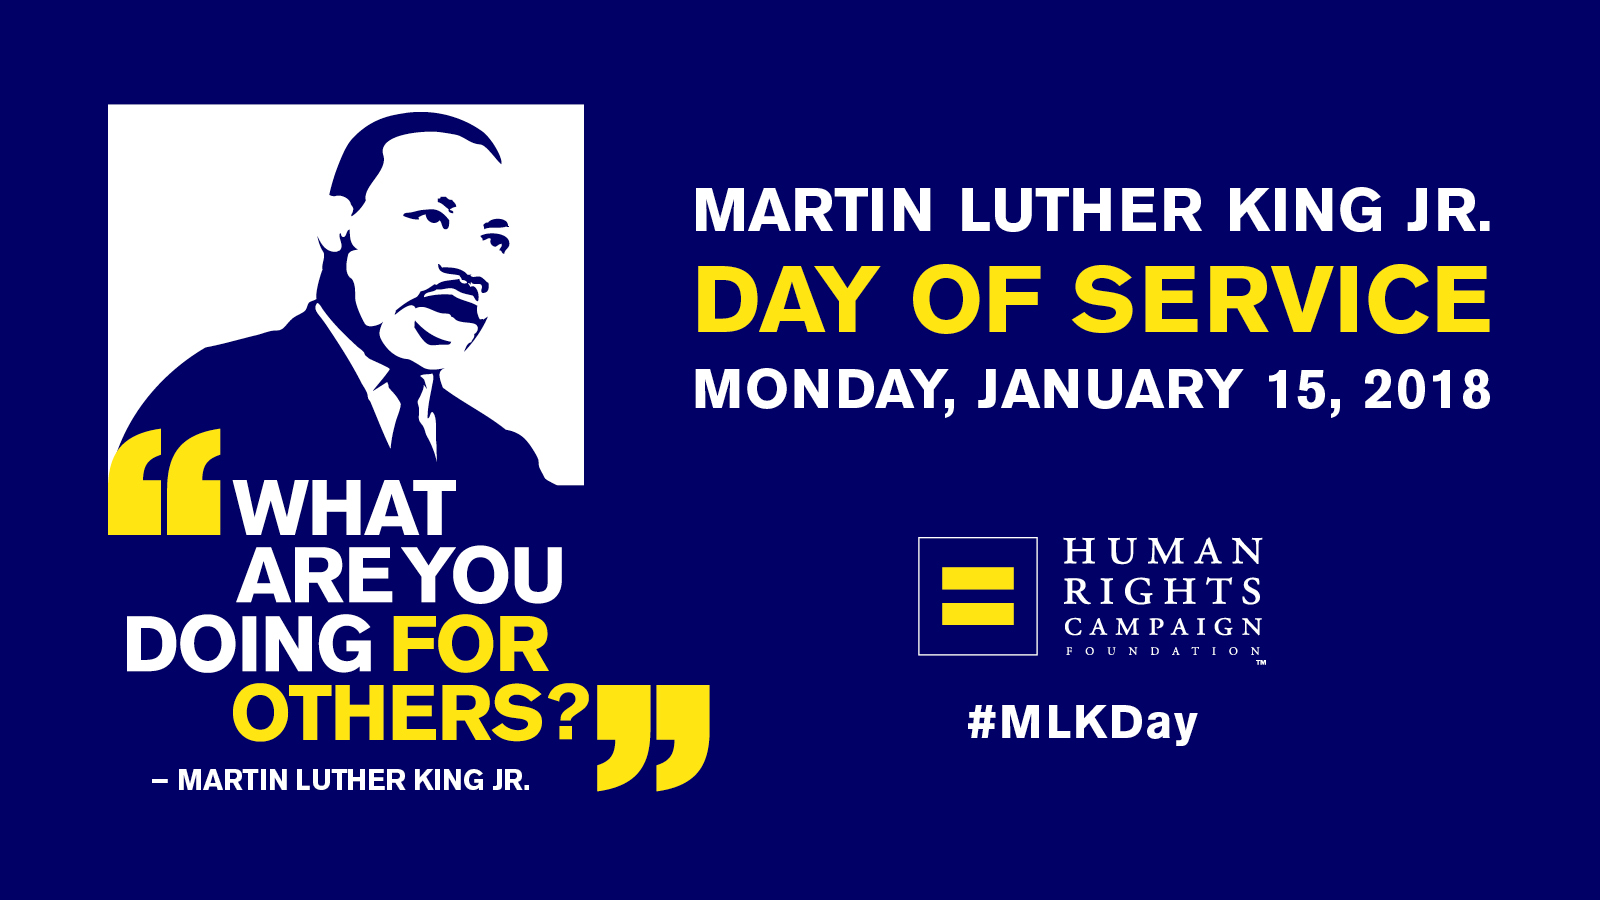 HRC to Hold More than 25 Community Service Events on Dr. Martin Luther King Jr. Day of Service